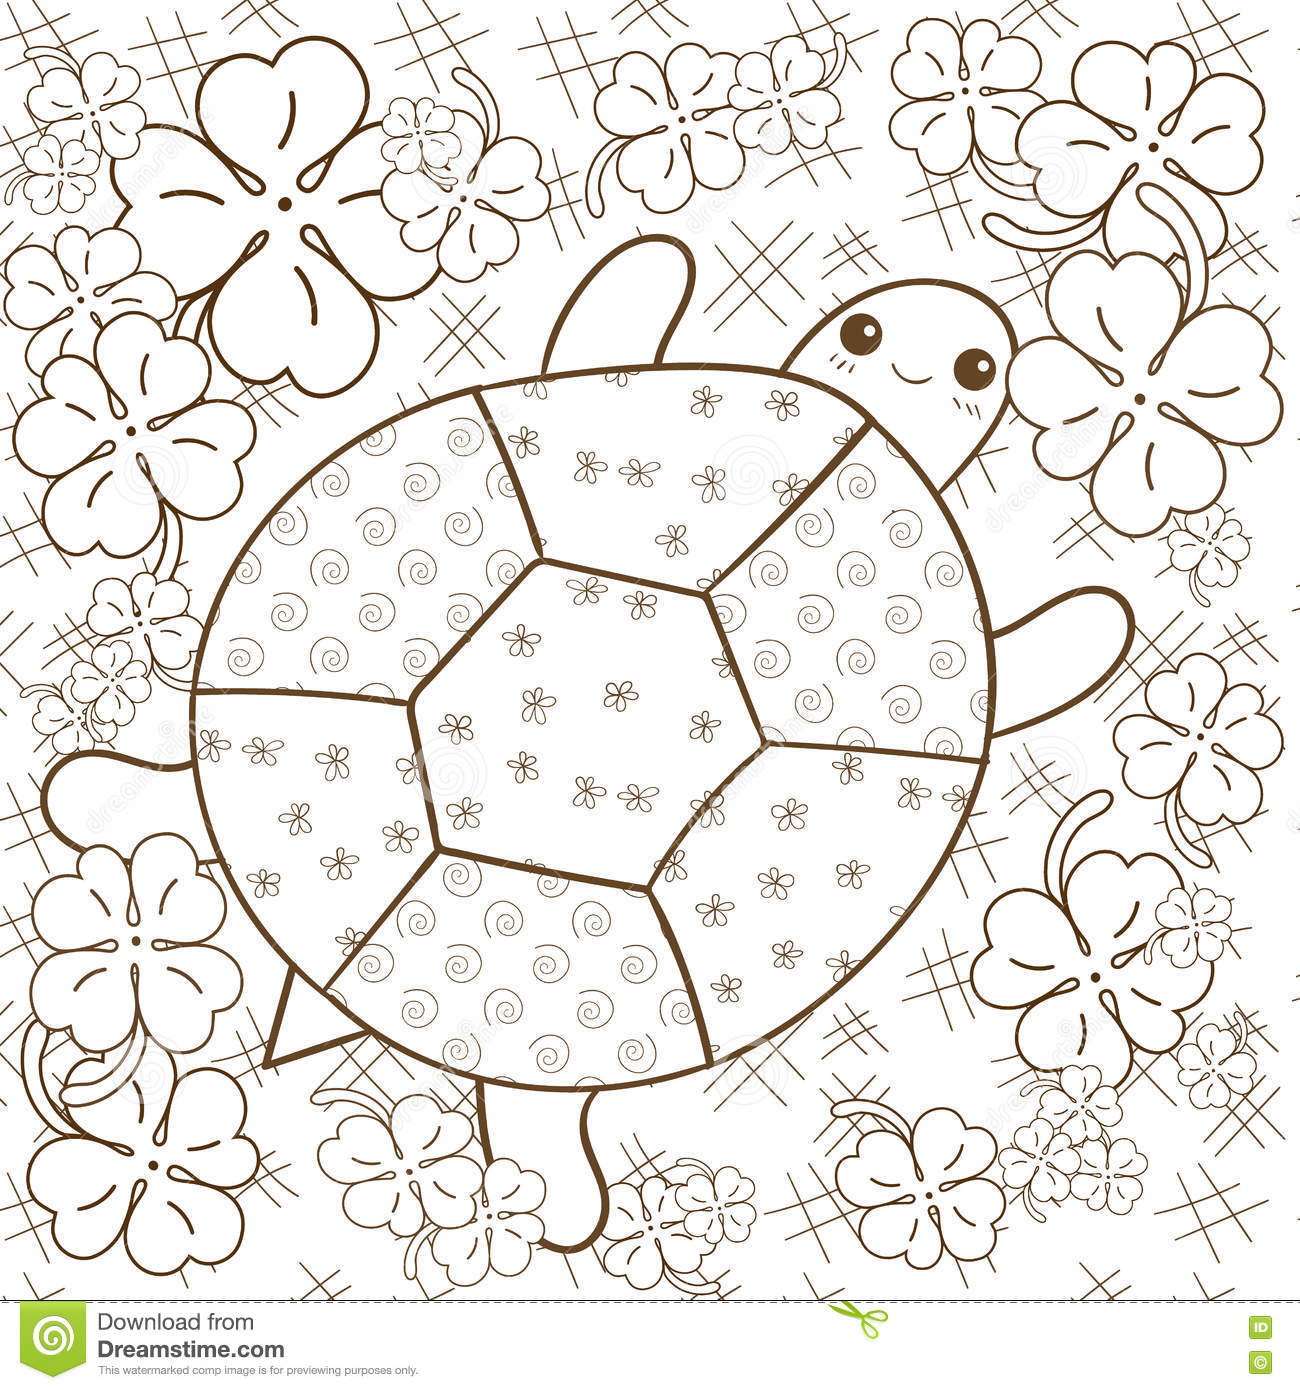 Cute Snail Adult Coloring Book Page Cartoon Vector